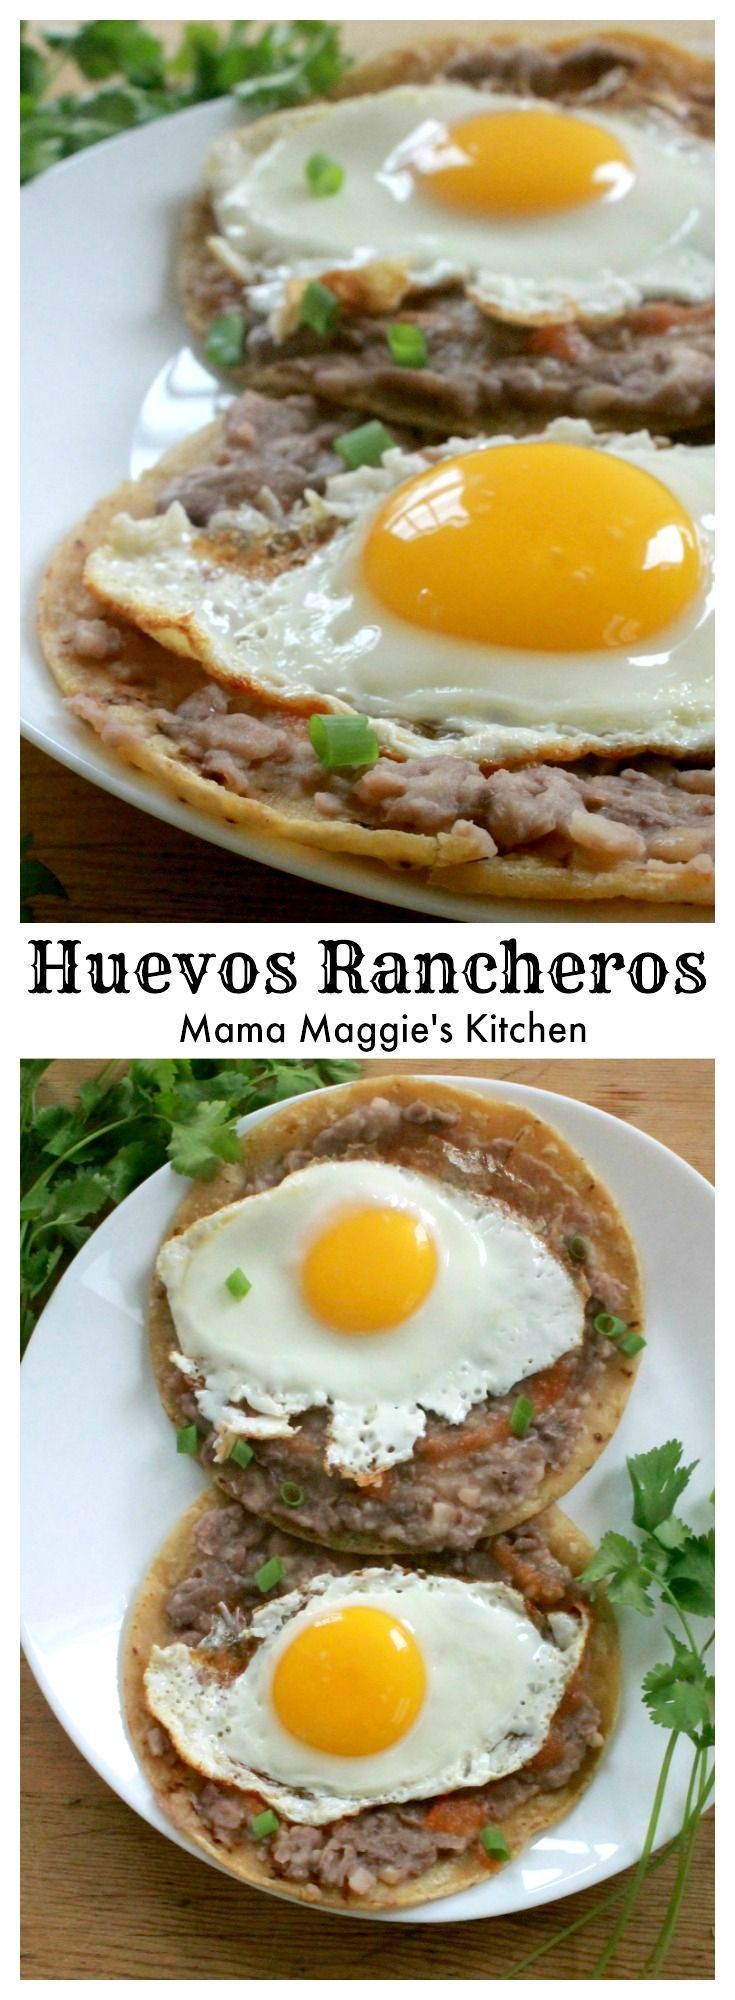 """Huevos Rancheros (or """"Rancher's Eggs"""") is a classic Mexican breakfast. A delicious and hearty meal that is perfect for brunch. By Mama Maggie's Kitchen"""